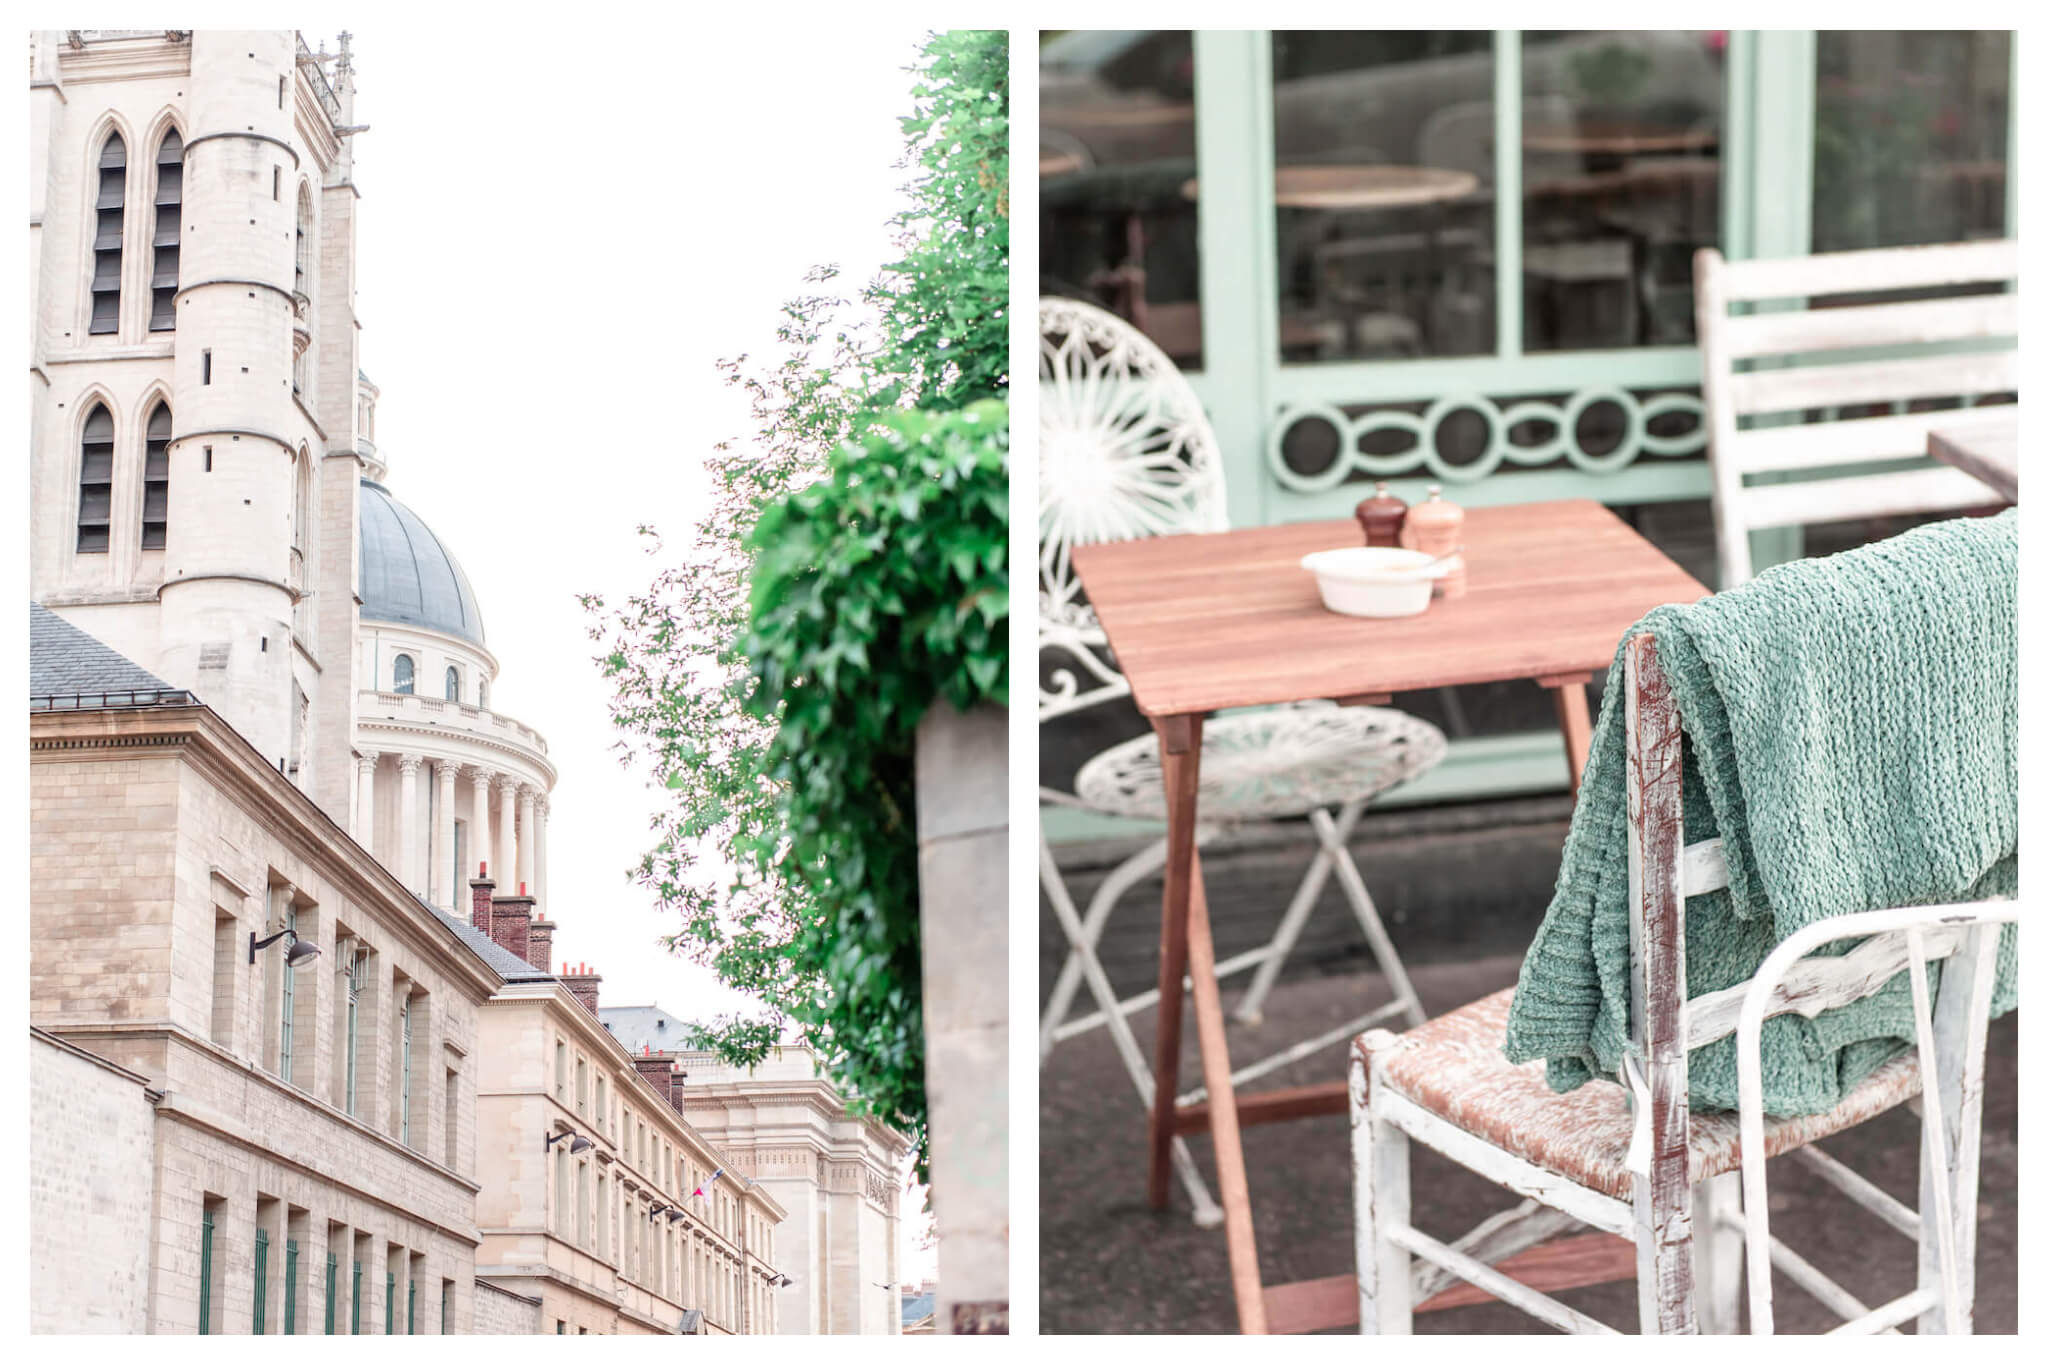 Left: A side view of the Pantheon in Paris' Latin Quarter on a bright day, Right: A table and chairs, one with a green blanket laid atop it, sit outside Treize au Jardin restaurant.